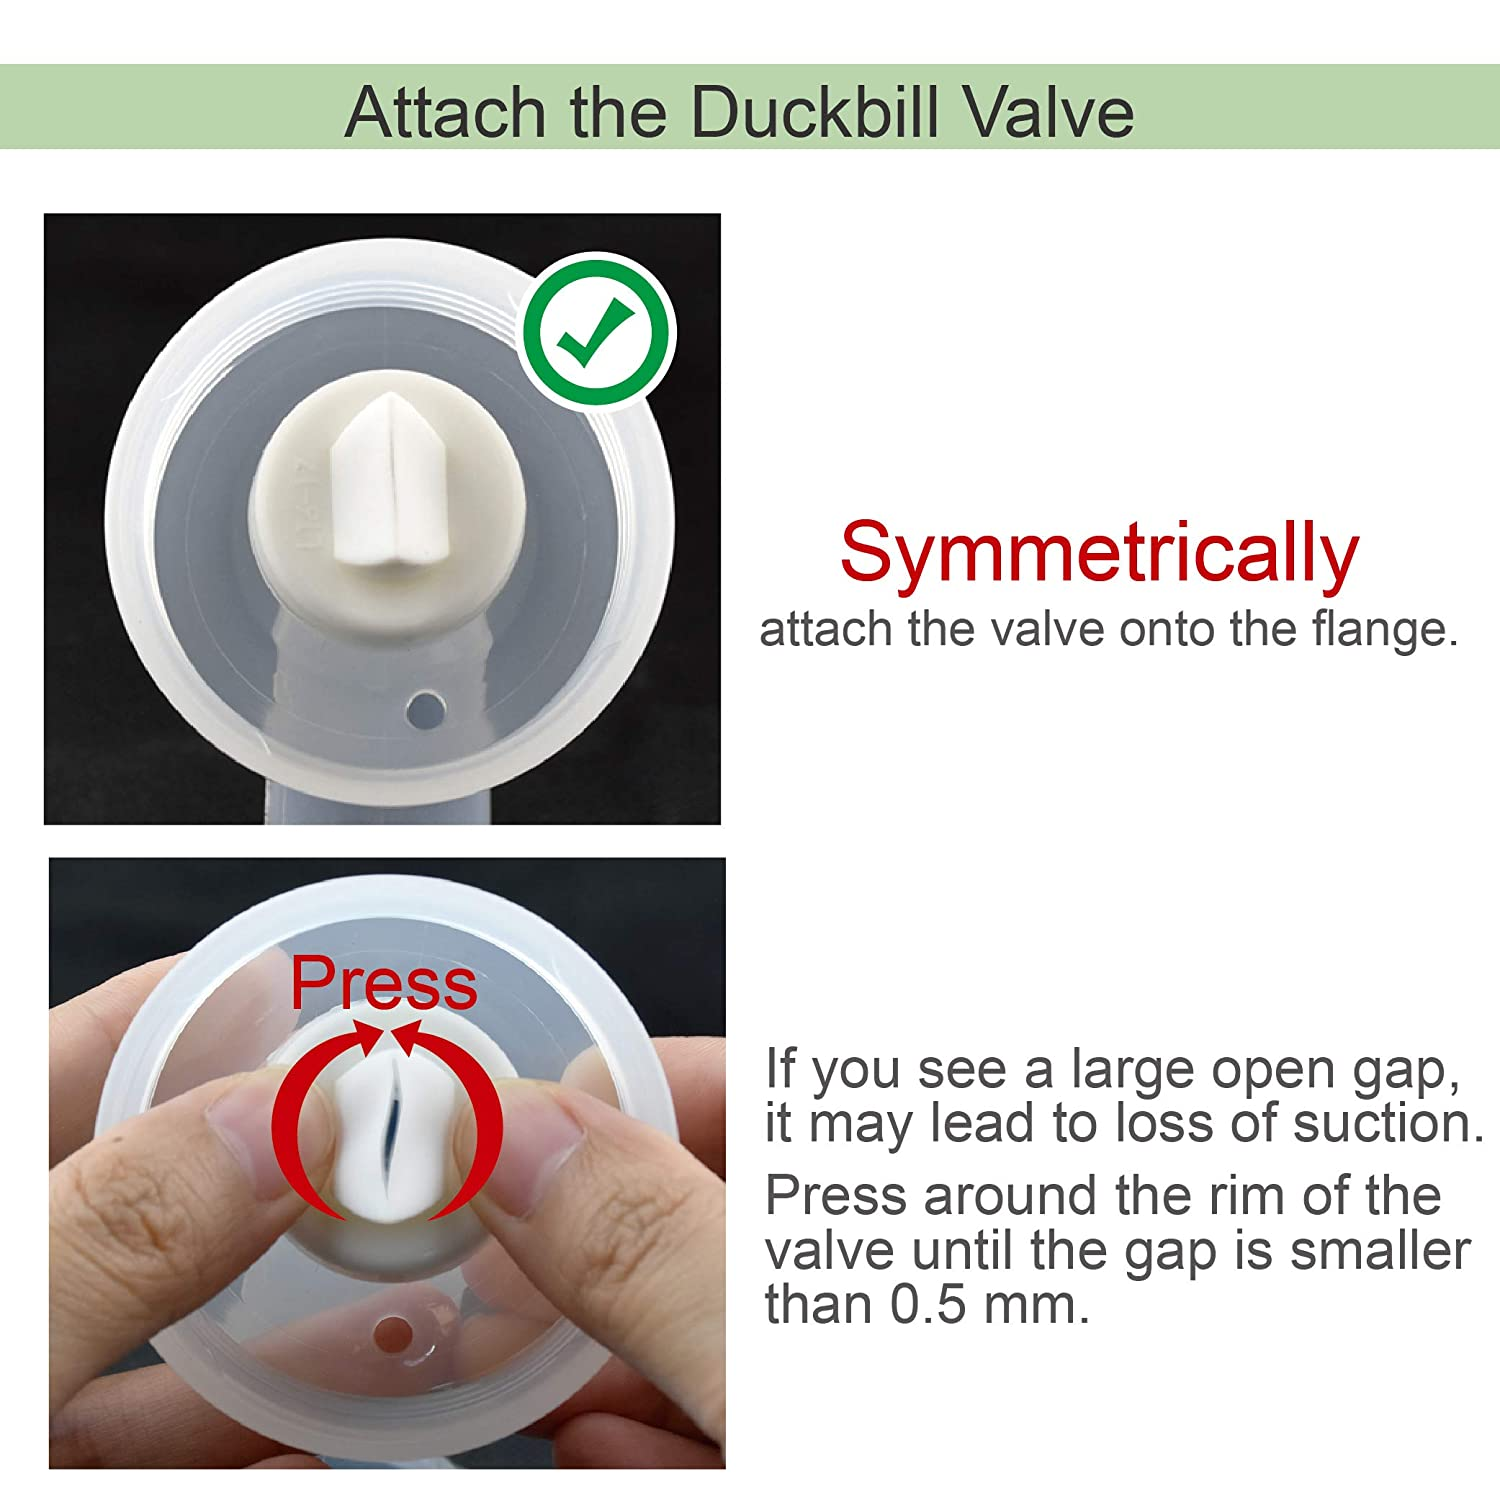 Maymom Duckbill Valves for Spectra 3G 4pc Apricot Designed for Spectra S1 Spectra S2 Spectra 9 Plus Spectra Dew 350 Not Original Spectra Pump Parts Spectra S2 Accessories Replace Spectra Valve